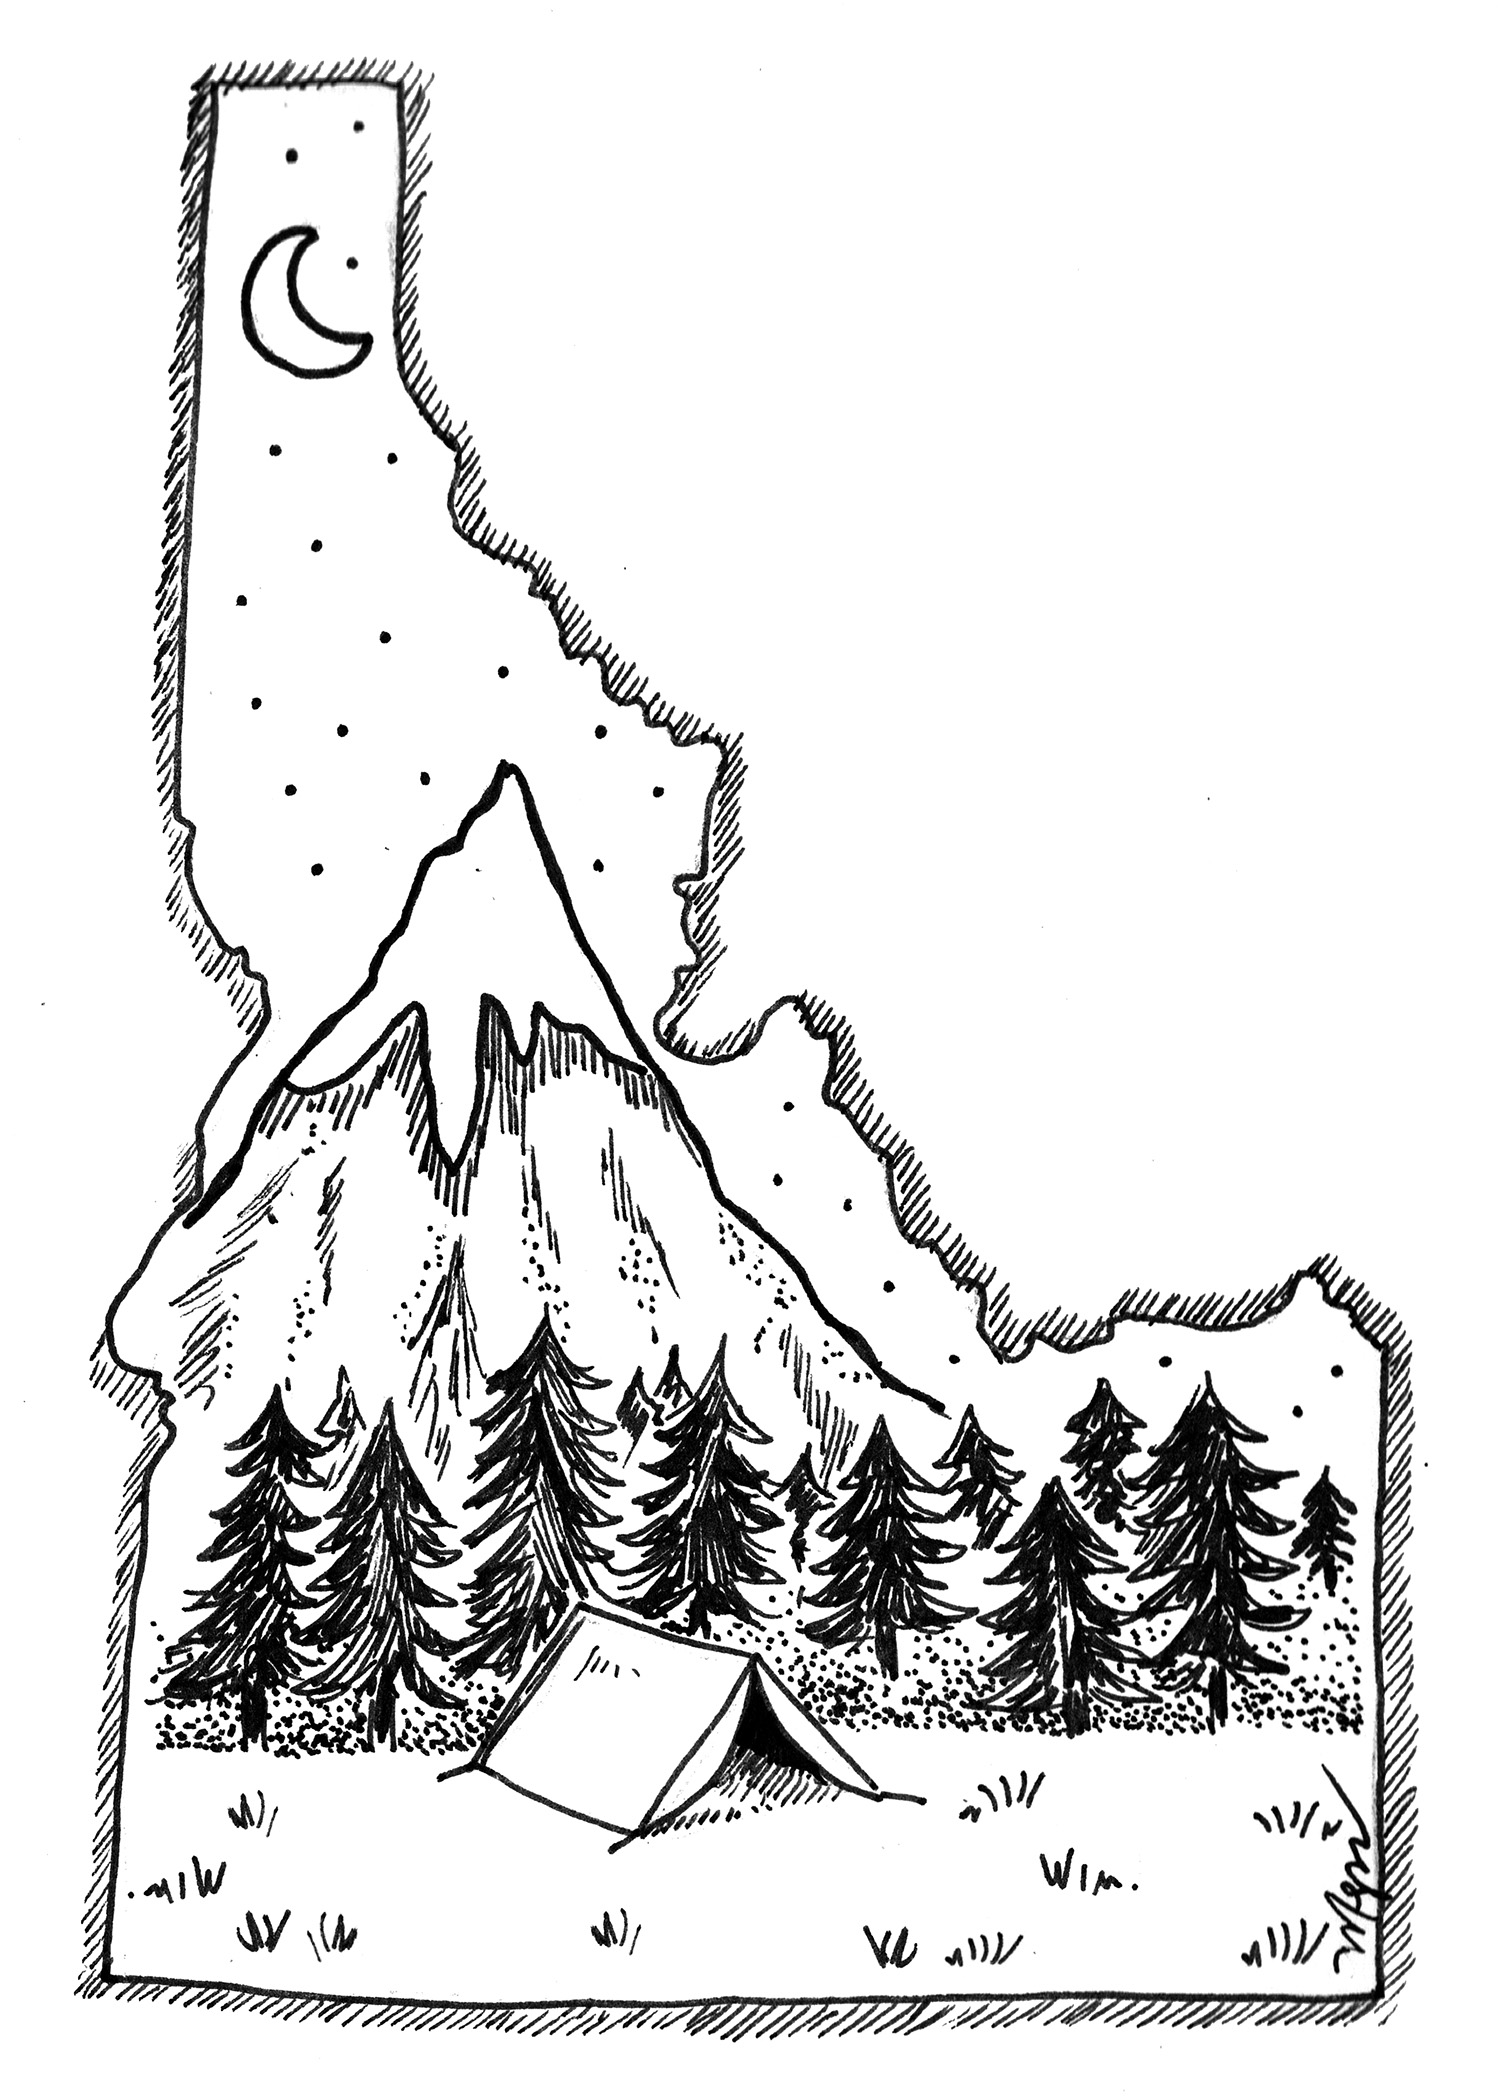 draw an original pen-and-ink illustration